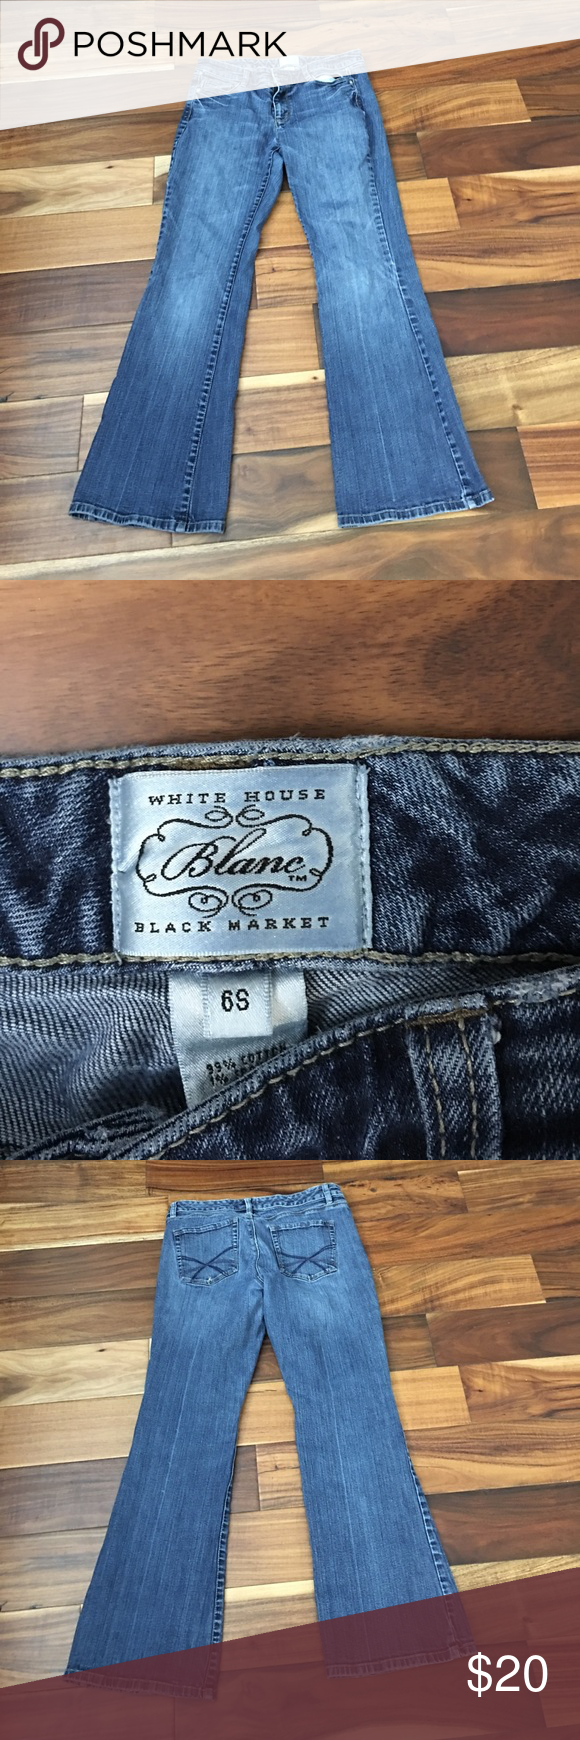 White House black market jeans Mint condition. No tears or stains. These are 6short White House Black Market Pants